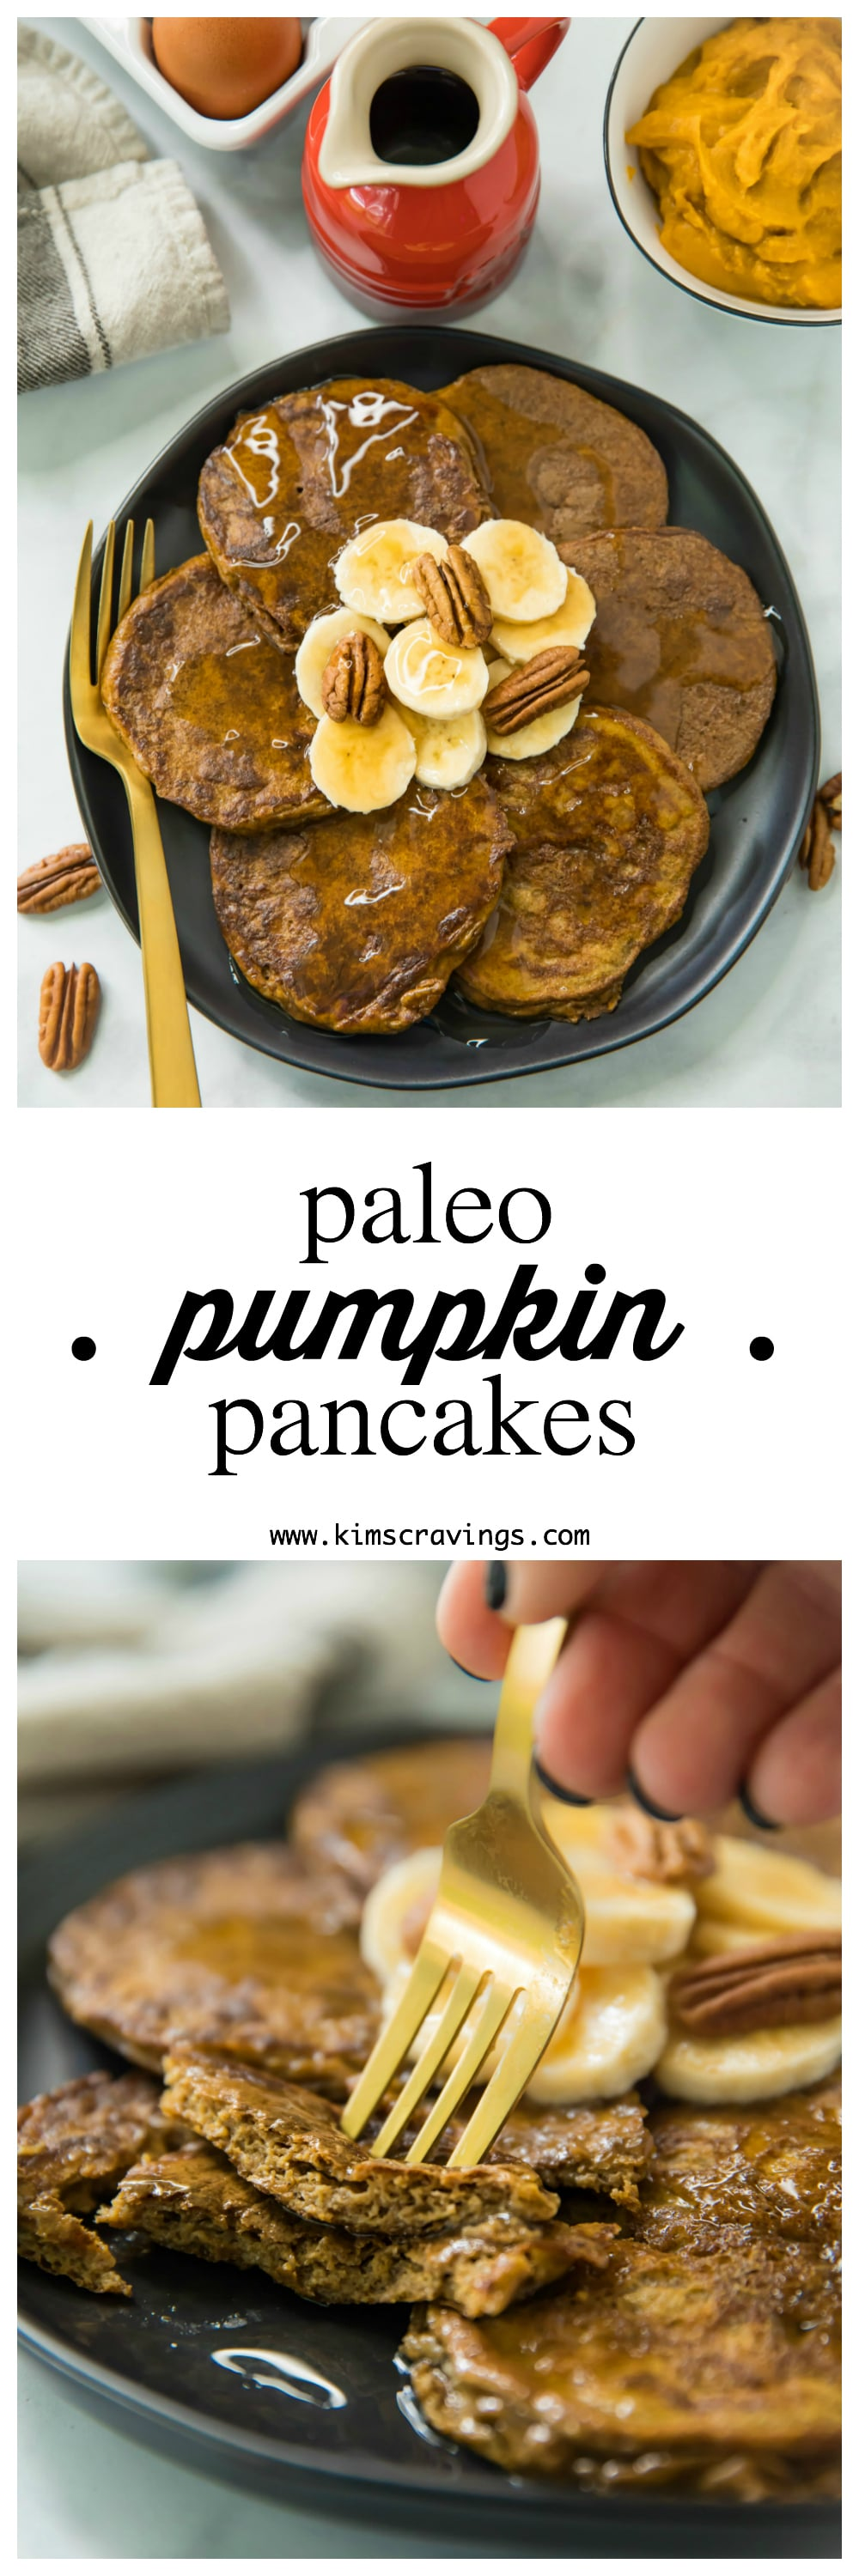 Hey friends! Ready for a plate of delicious, wholesome, Flourless Paleo Pumpkin Pancakes? These pancakes legit taste like enjoying tasty pumpkin pie for breakfast and they're actually healthy. You'll only need several ingredients to cook up these dairy-free, gluten-free pancakes.